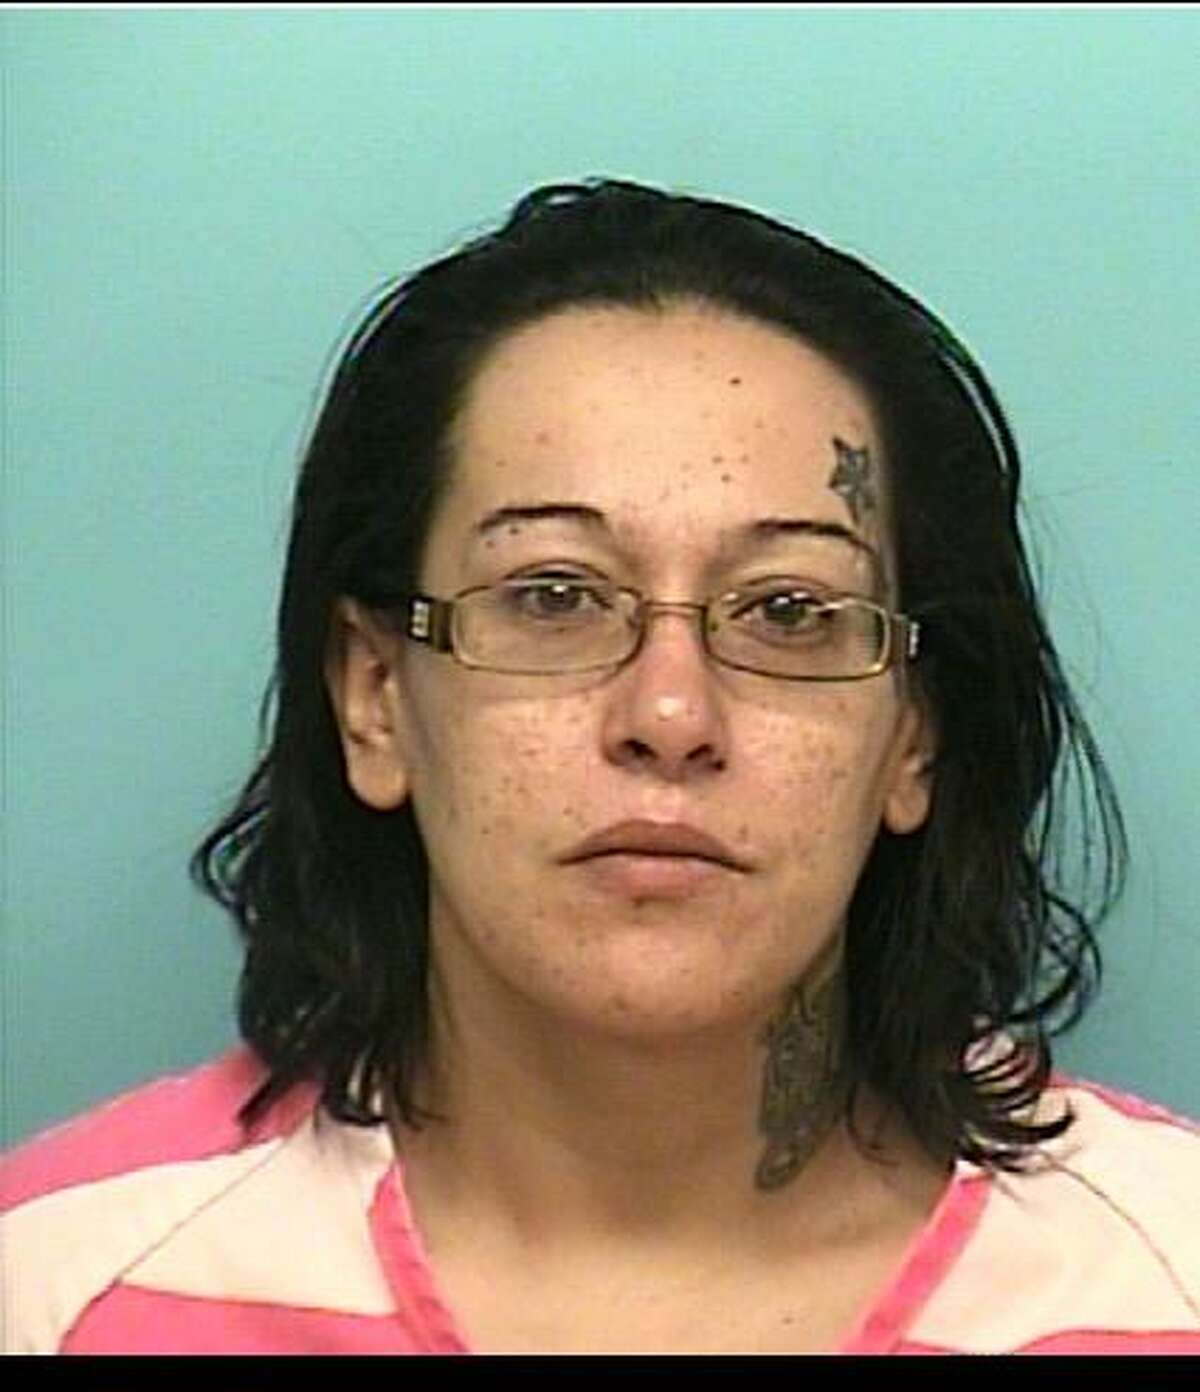 Armandina Reyna, 30, is charged with first-degree felony manufacture/delivery of a controlled substance, third-degree felony possession of a controlled substance and unlawful possession of a firearm by a felon.